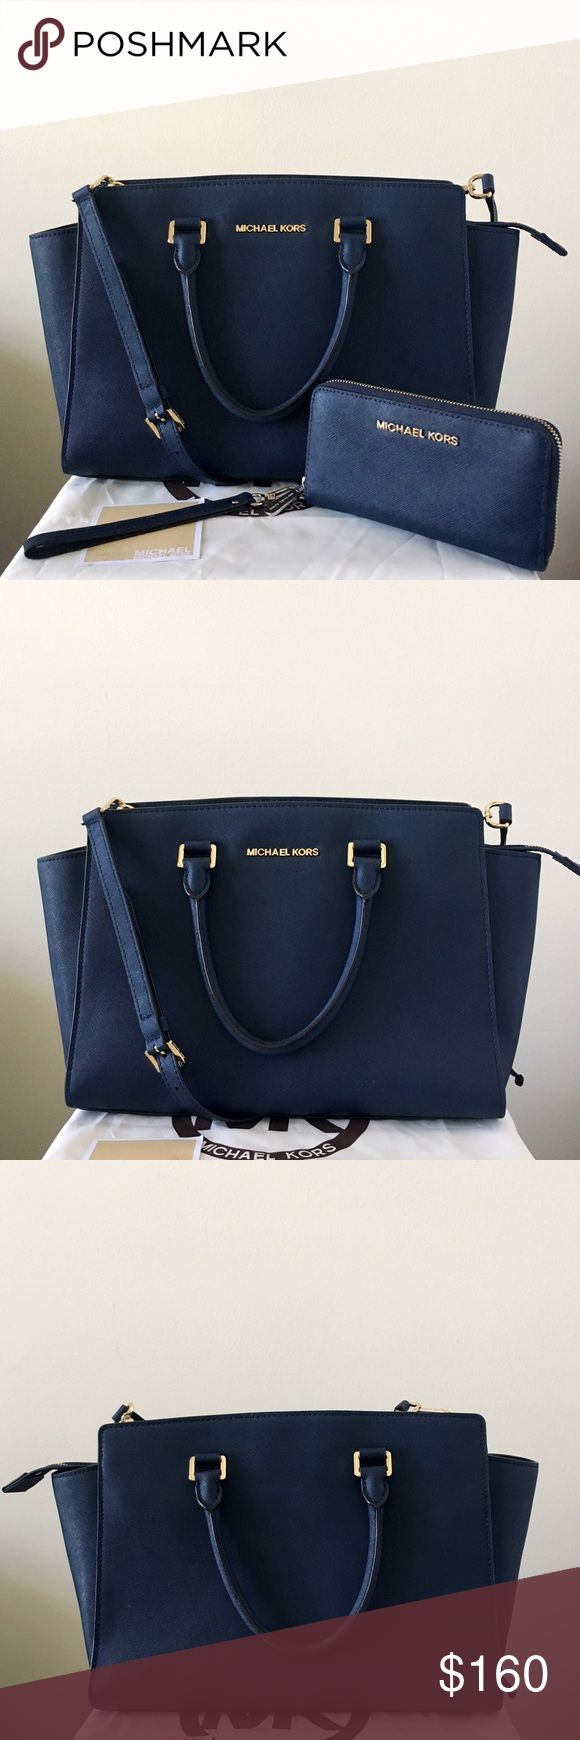 Michael Kors Large Selma With Matching Wristlet Navy (dark) blue with gold hardware. Lightly used. Authentic.  The Selma satchel/ Crossbody shows very minor wear on the hardware, otherwise in really good shape.  Wallet/ Wristlet shows wear on the zipper area, the gold paint faded, please see pictures for detail. Other than that in good condition.  Measurement: 14*9*4.5 inch Both come with a dust bag.😊 Michael Kors Bags Satchels